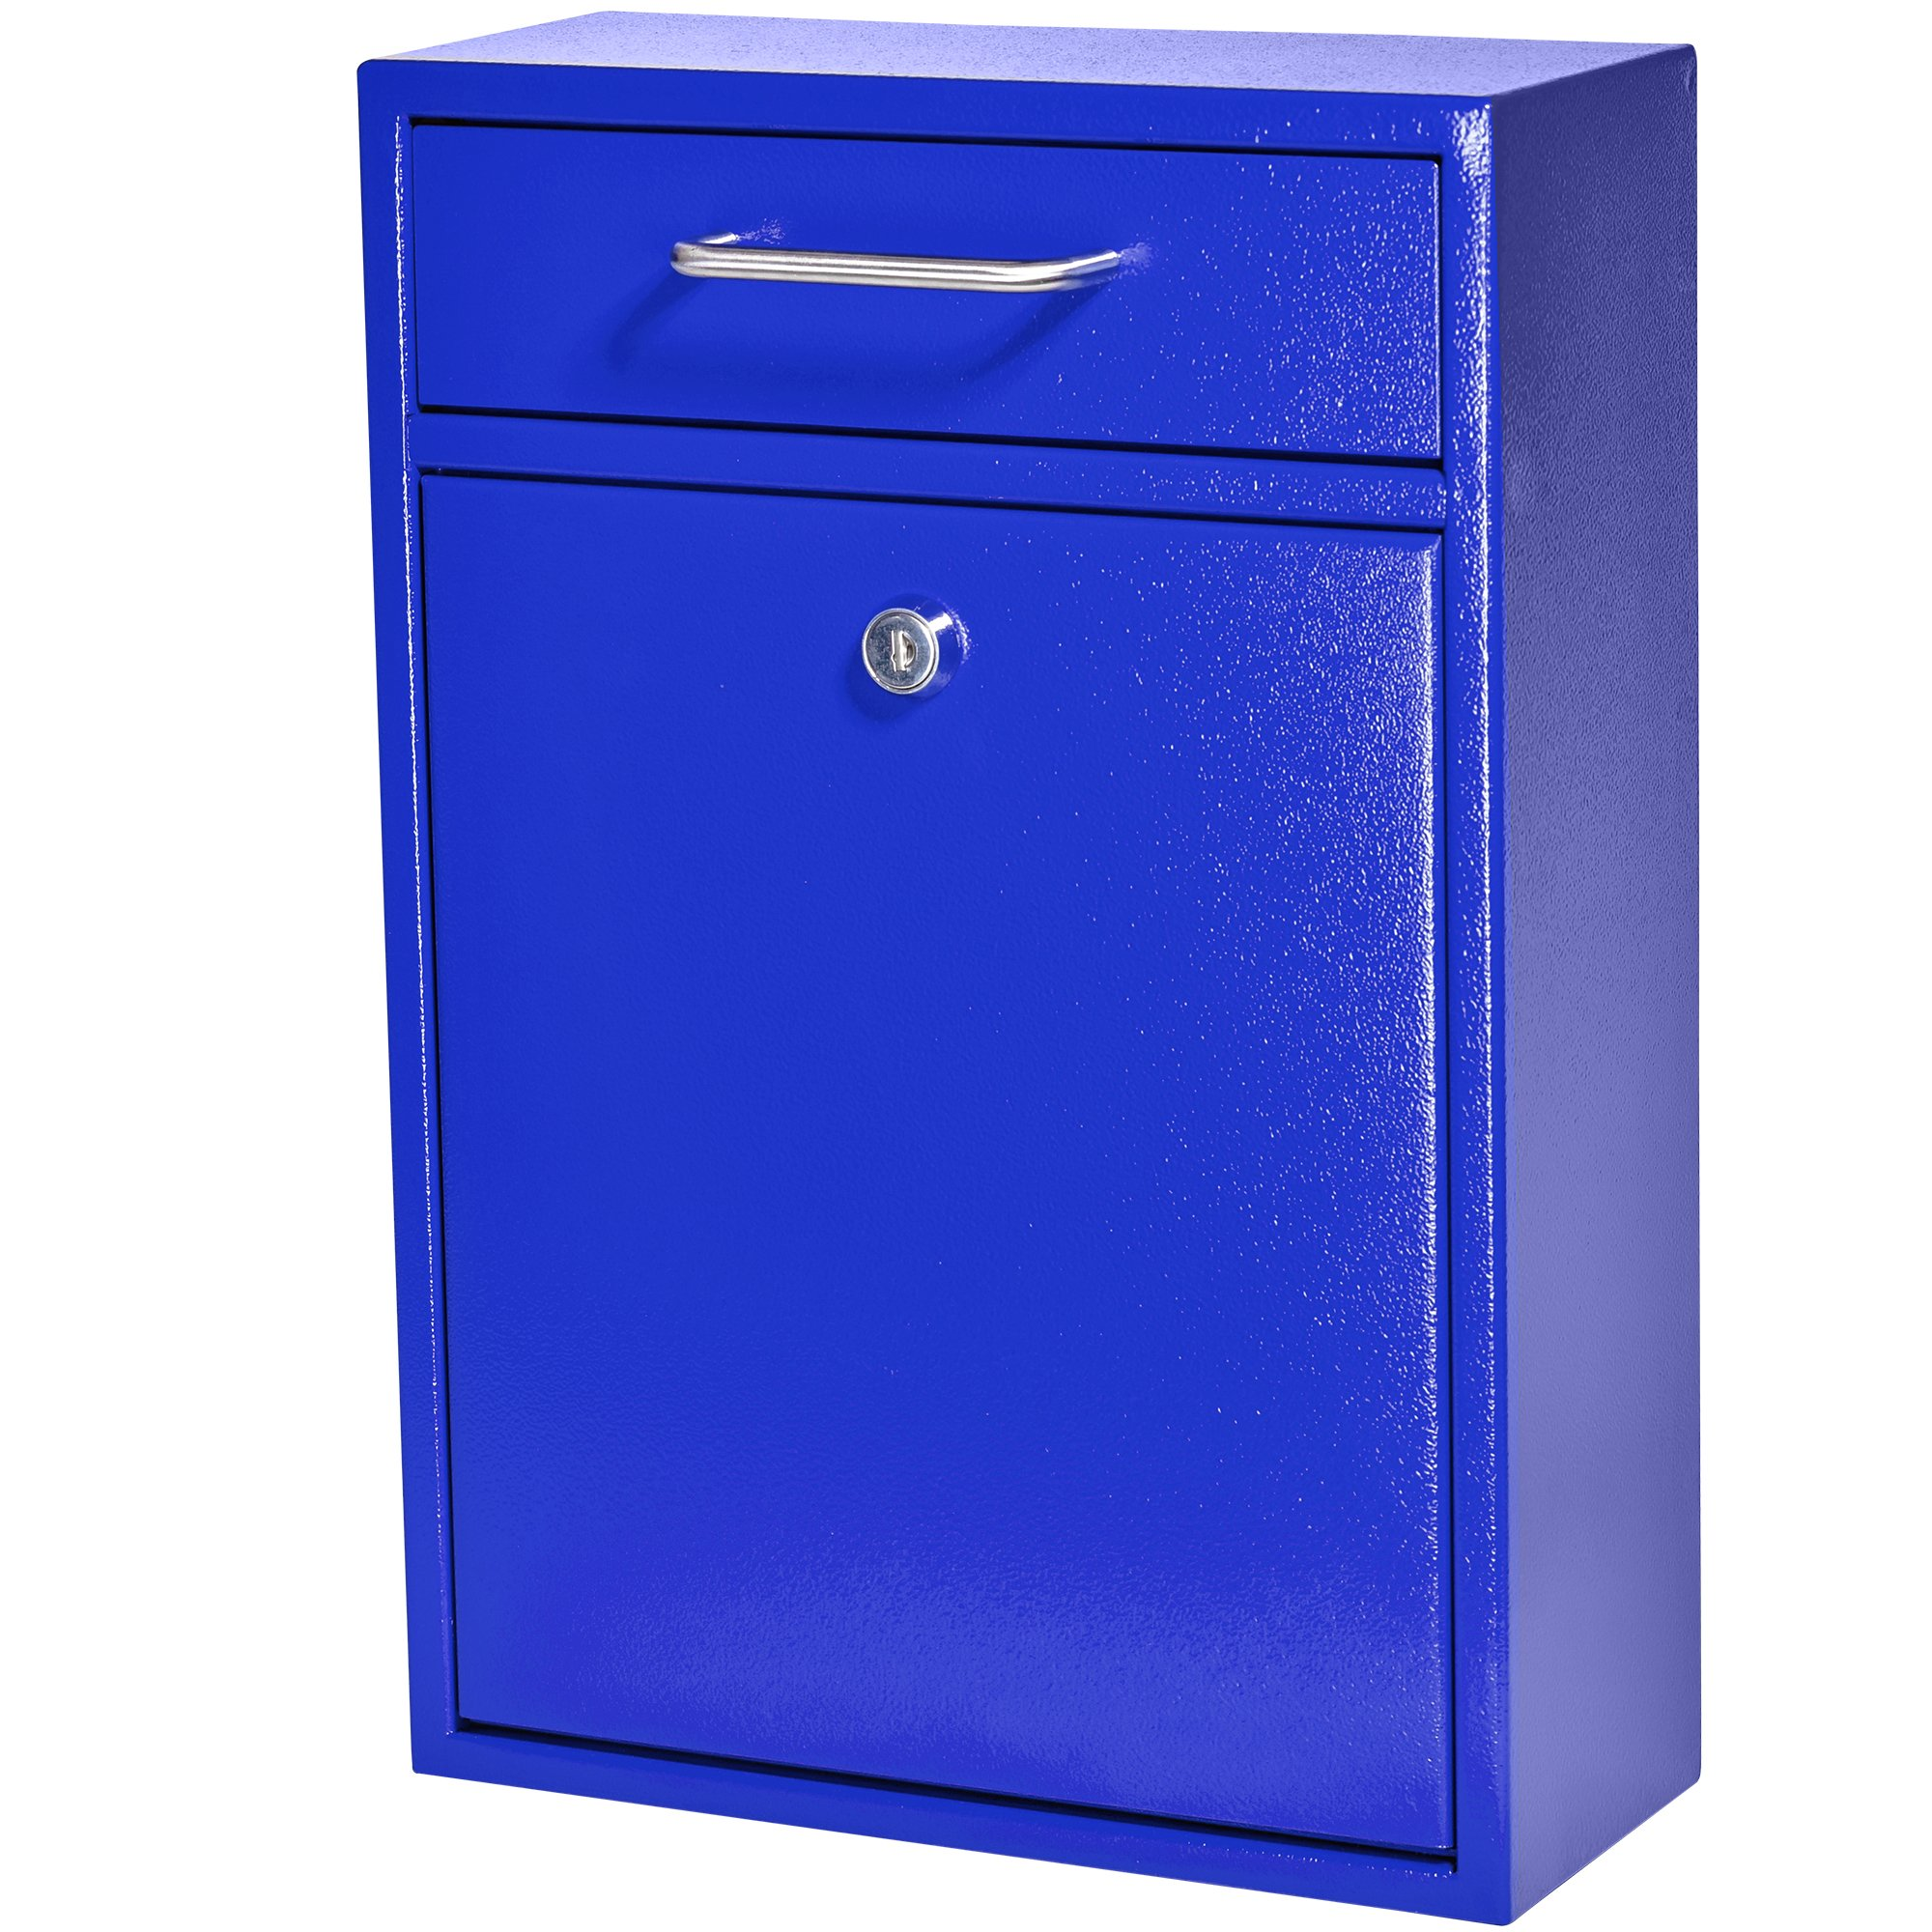 Mail Boss 7424 High Security Steel Locking Wall Mounted Mailbox - Office Drop Box - Comment Box - Letter Box - Deposit Box, Blue